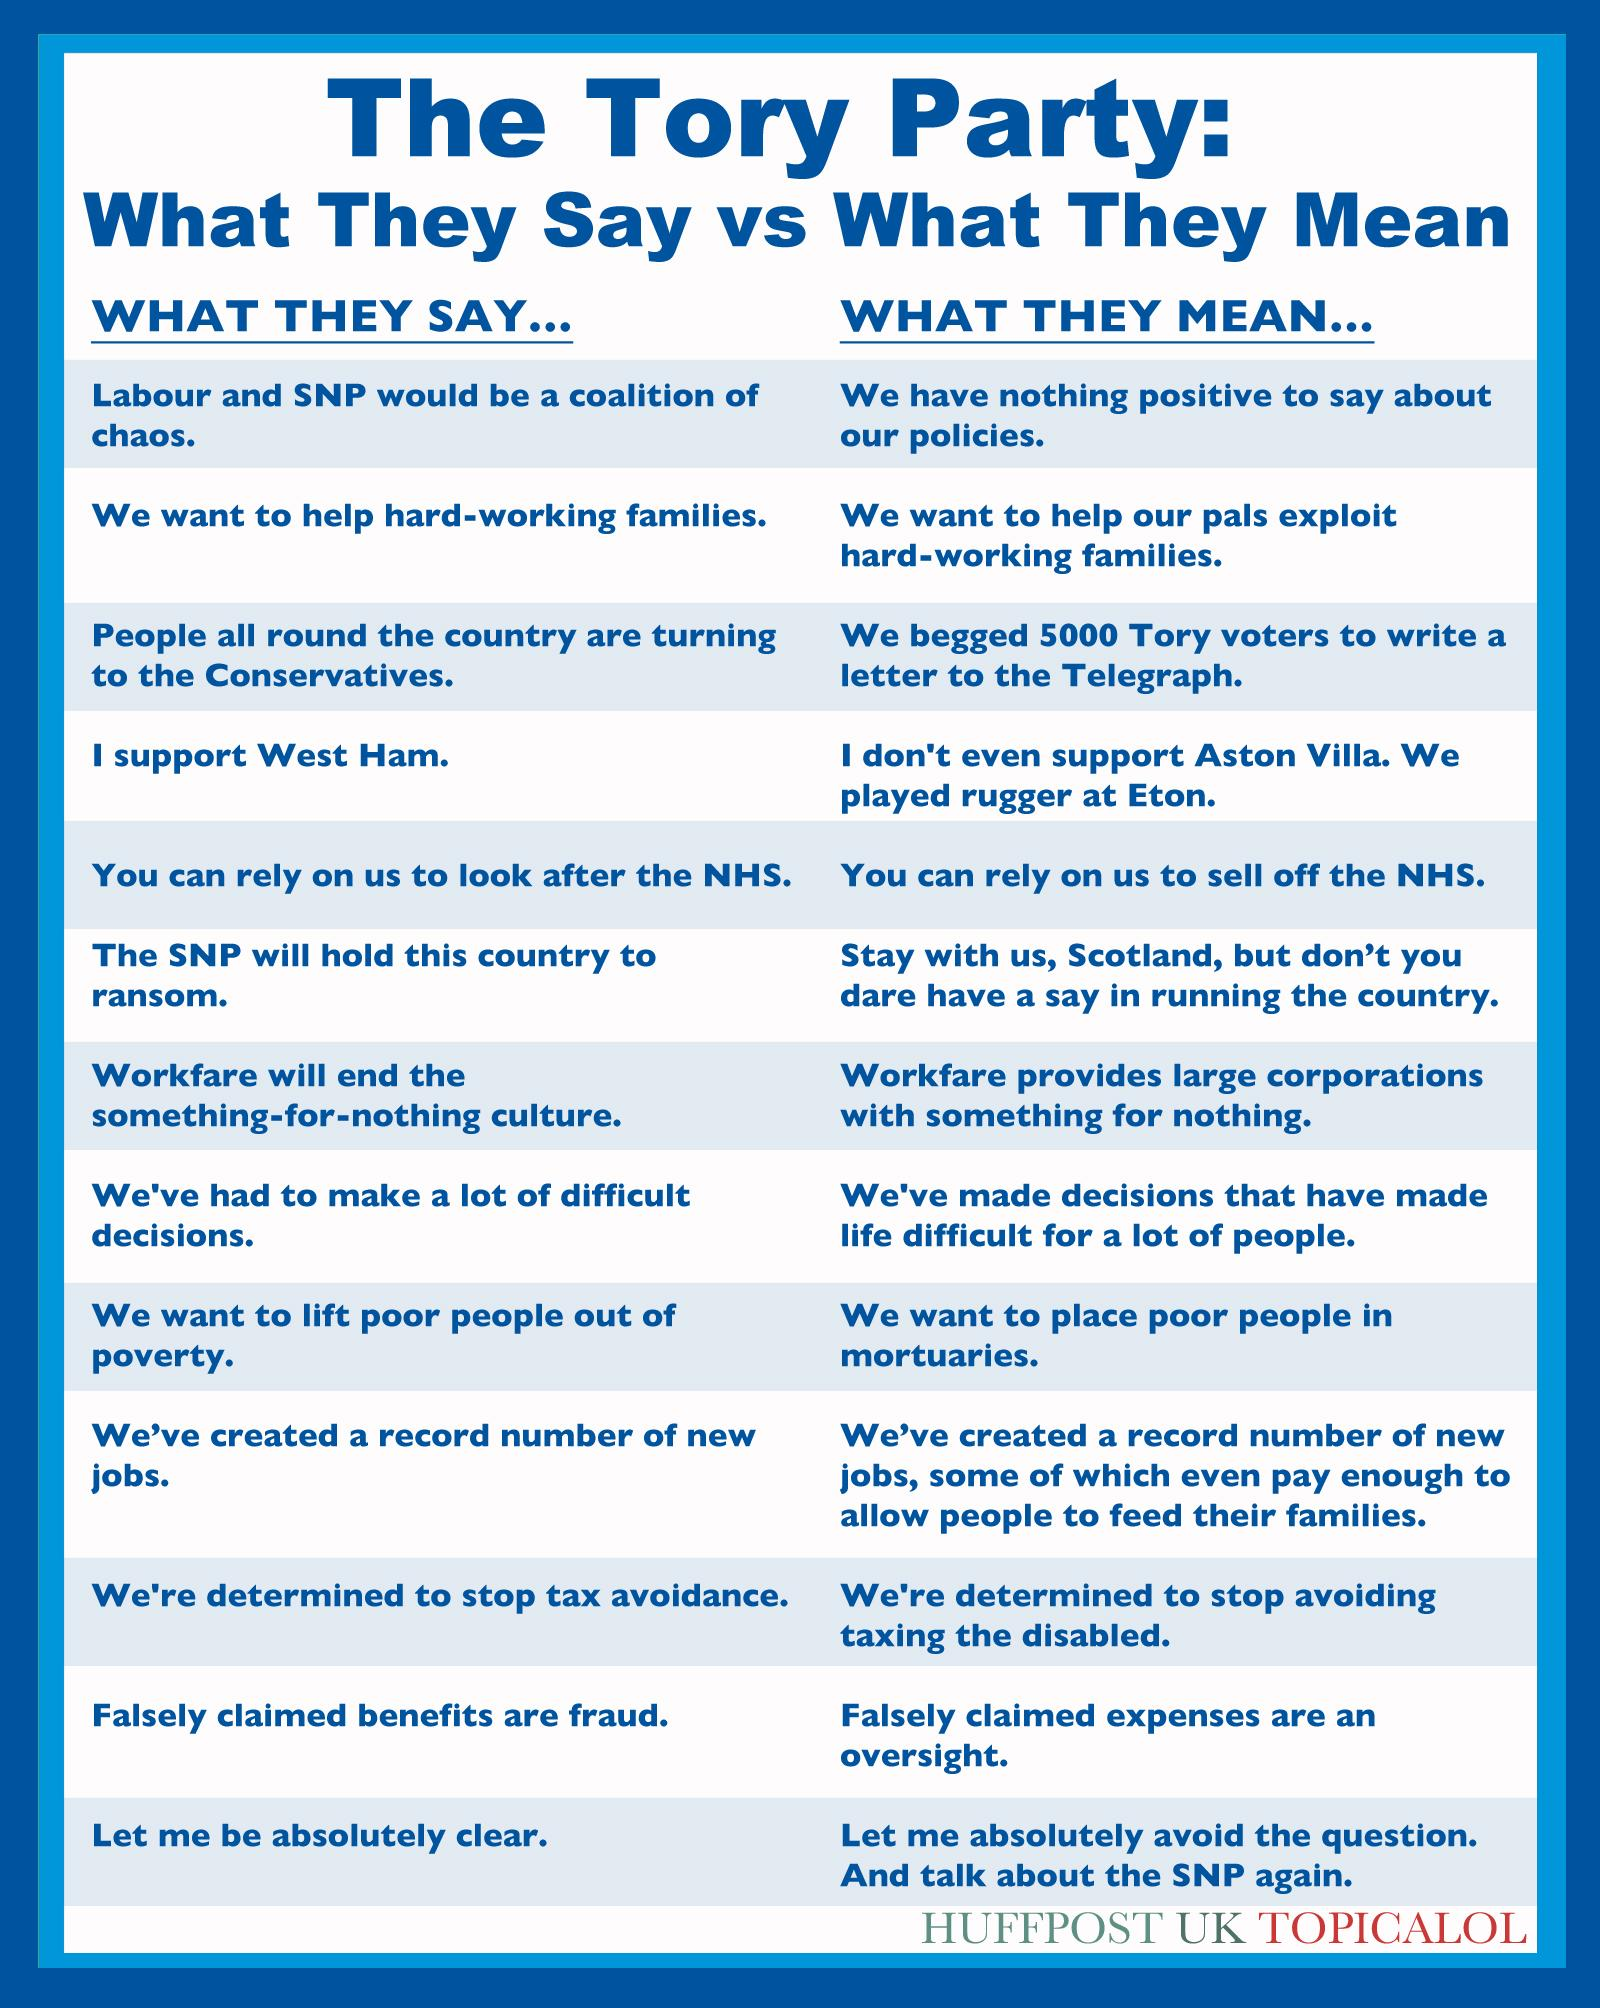 What the Tories say vs what they mean. (done with @Jason_Spacey for @HuffPostUKCom) #bbcqt  http://t.co/I7GRVOiSRy http://t.co/ALYuNodGHh